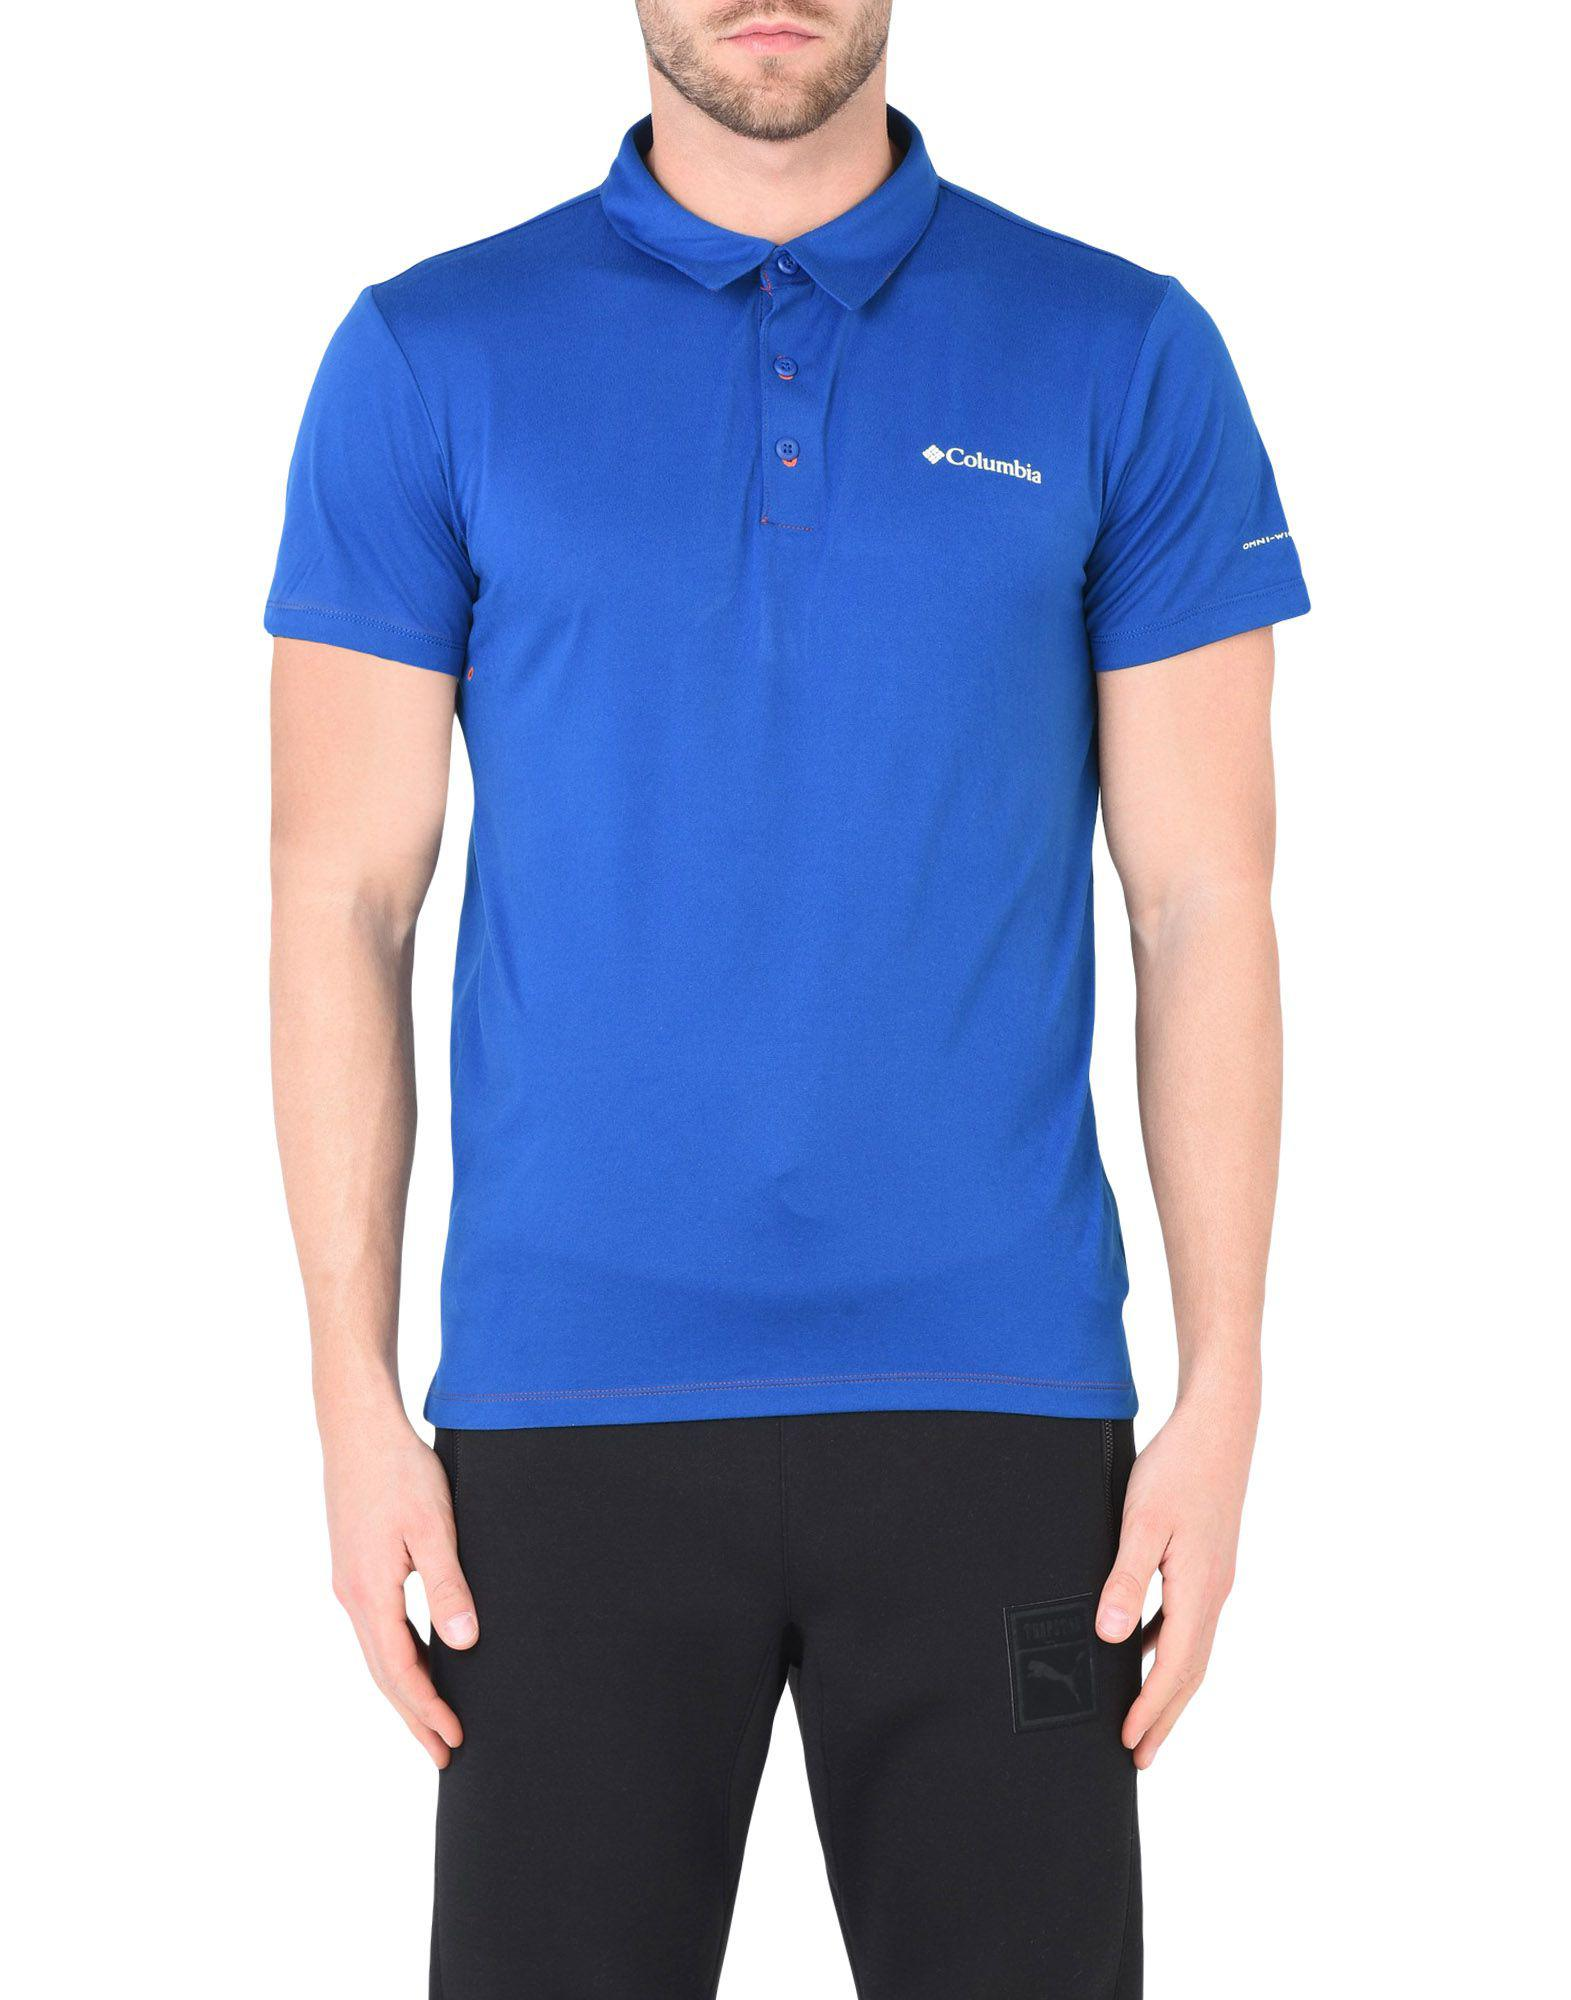 Columbia Synthetic Polo Shirt in Blue for Men